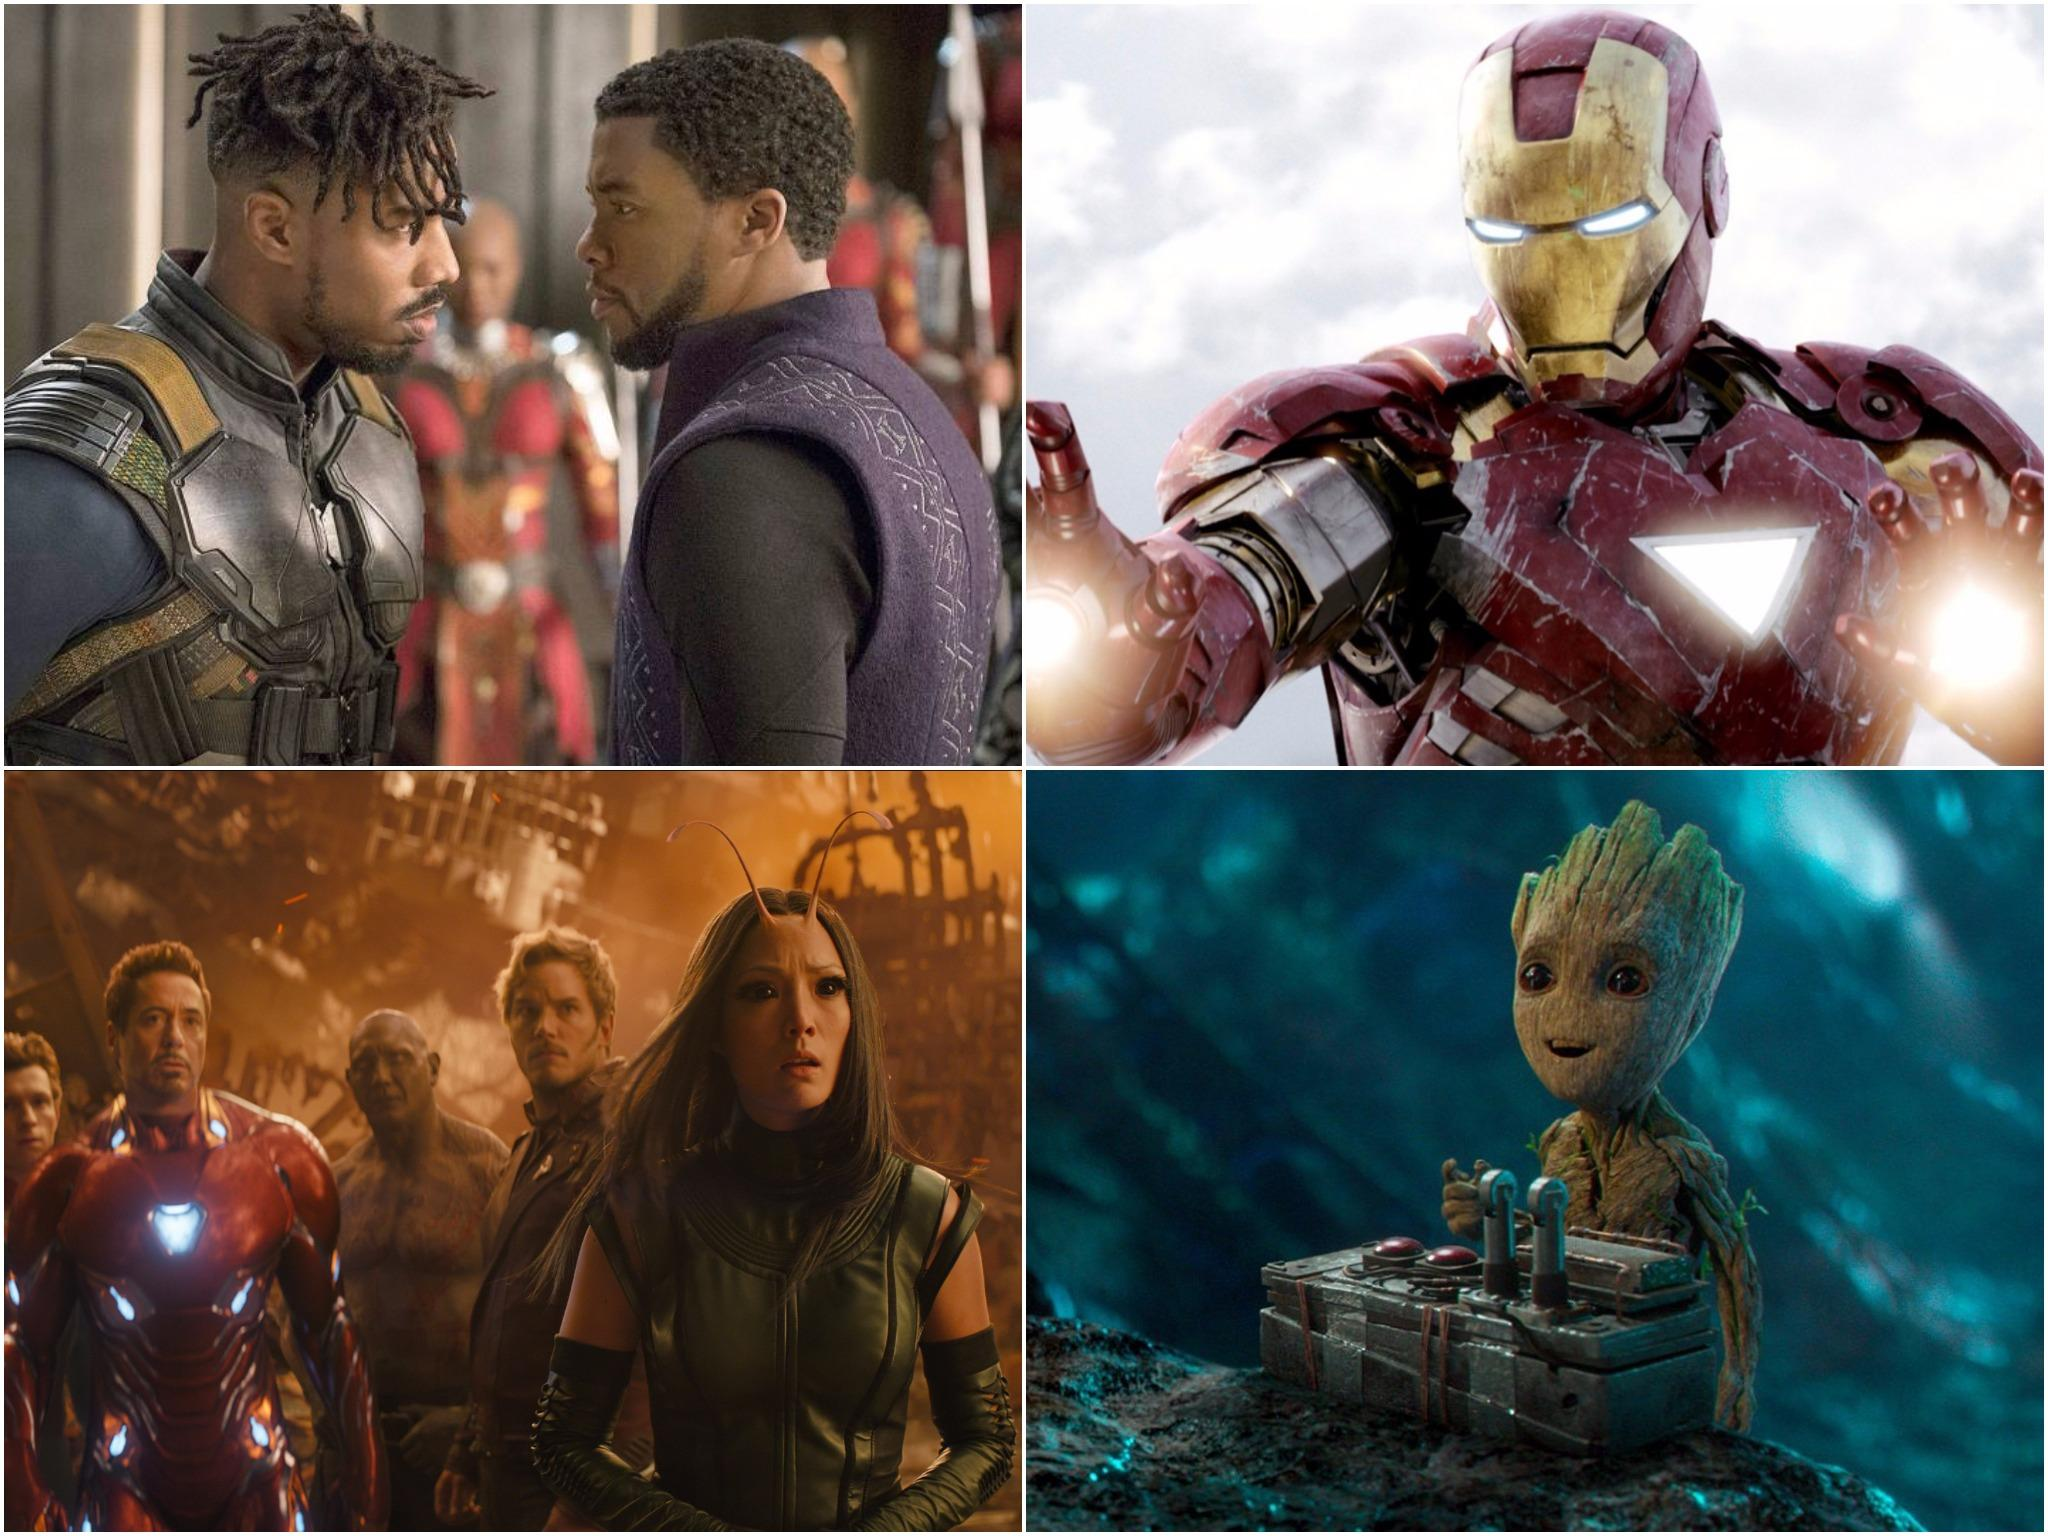 Marvel Cinematic Universe films ranked: From Black Panther to the